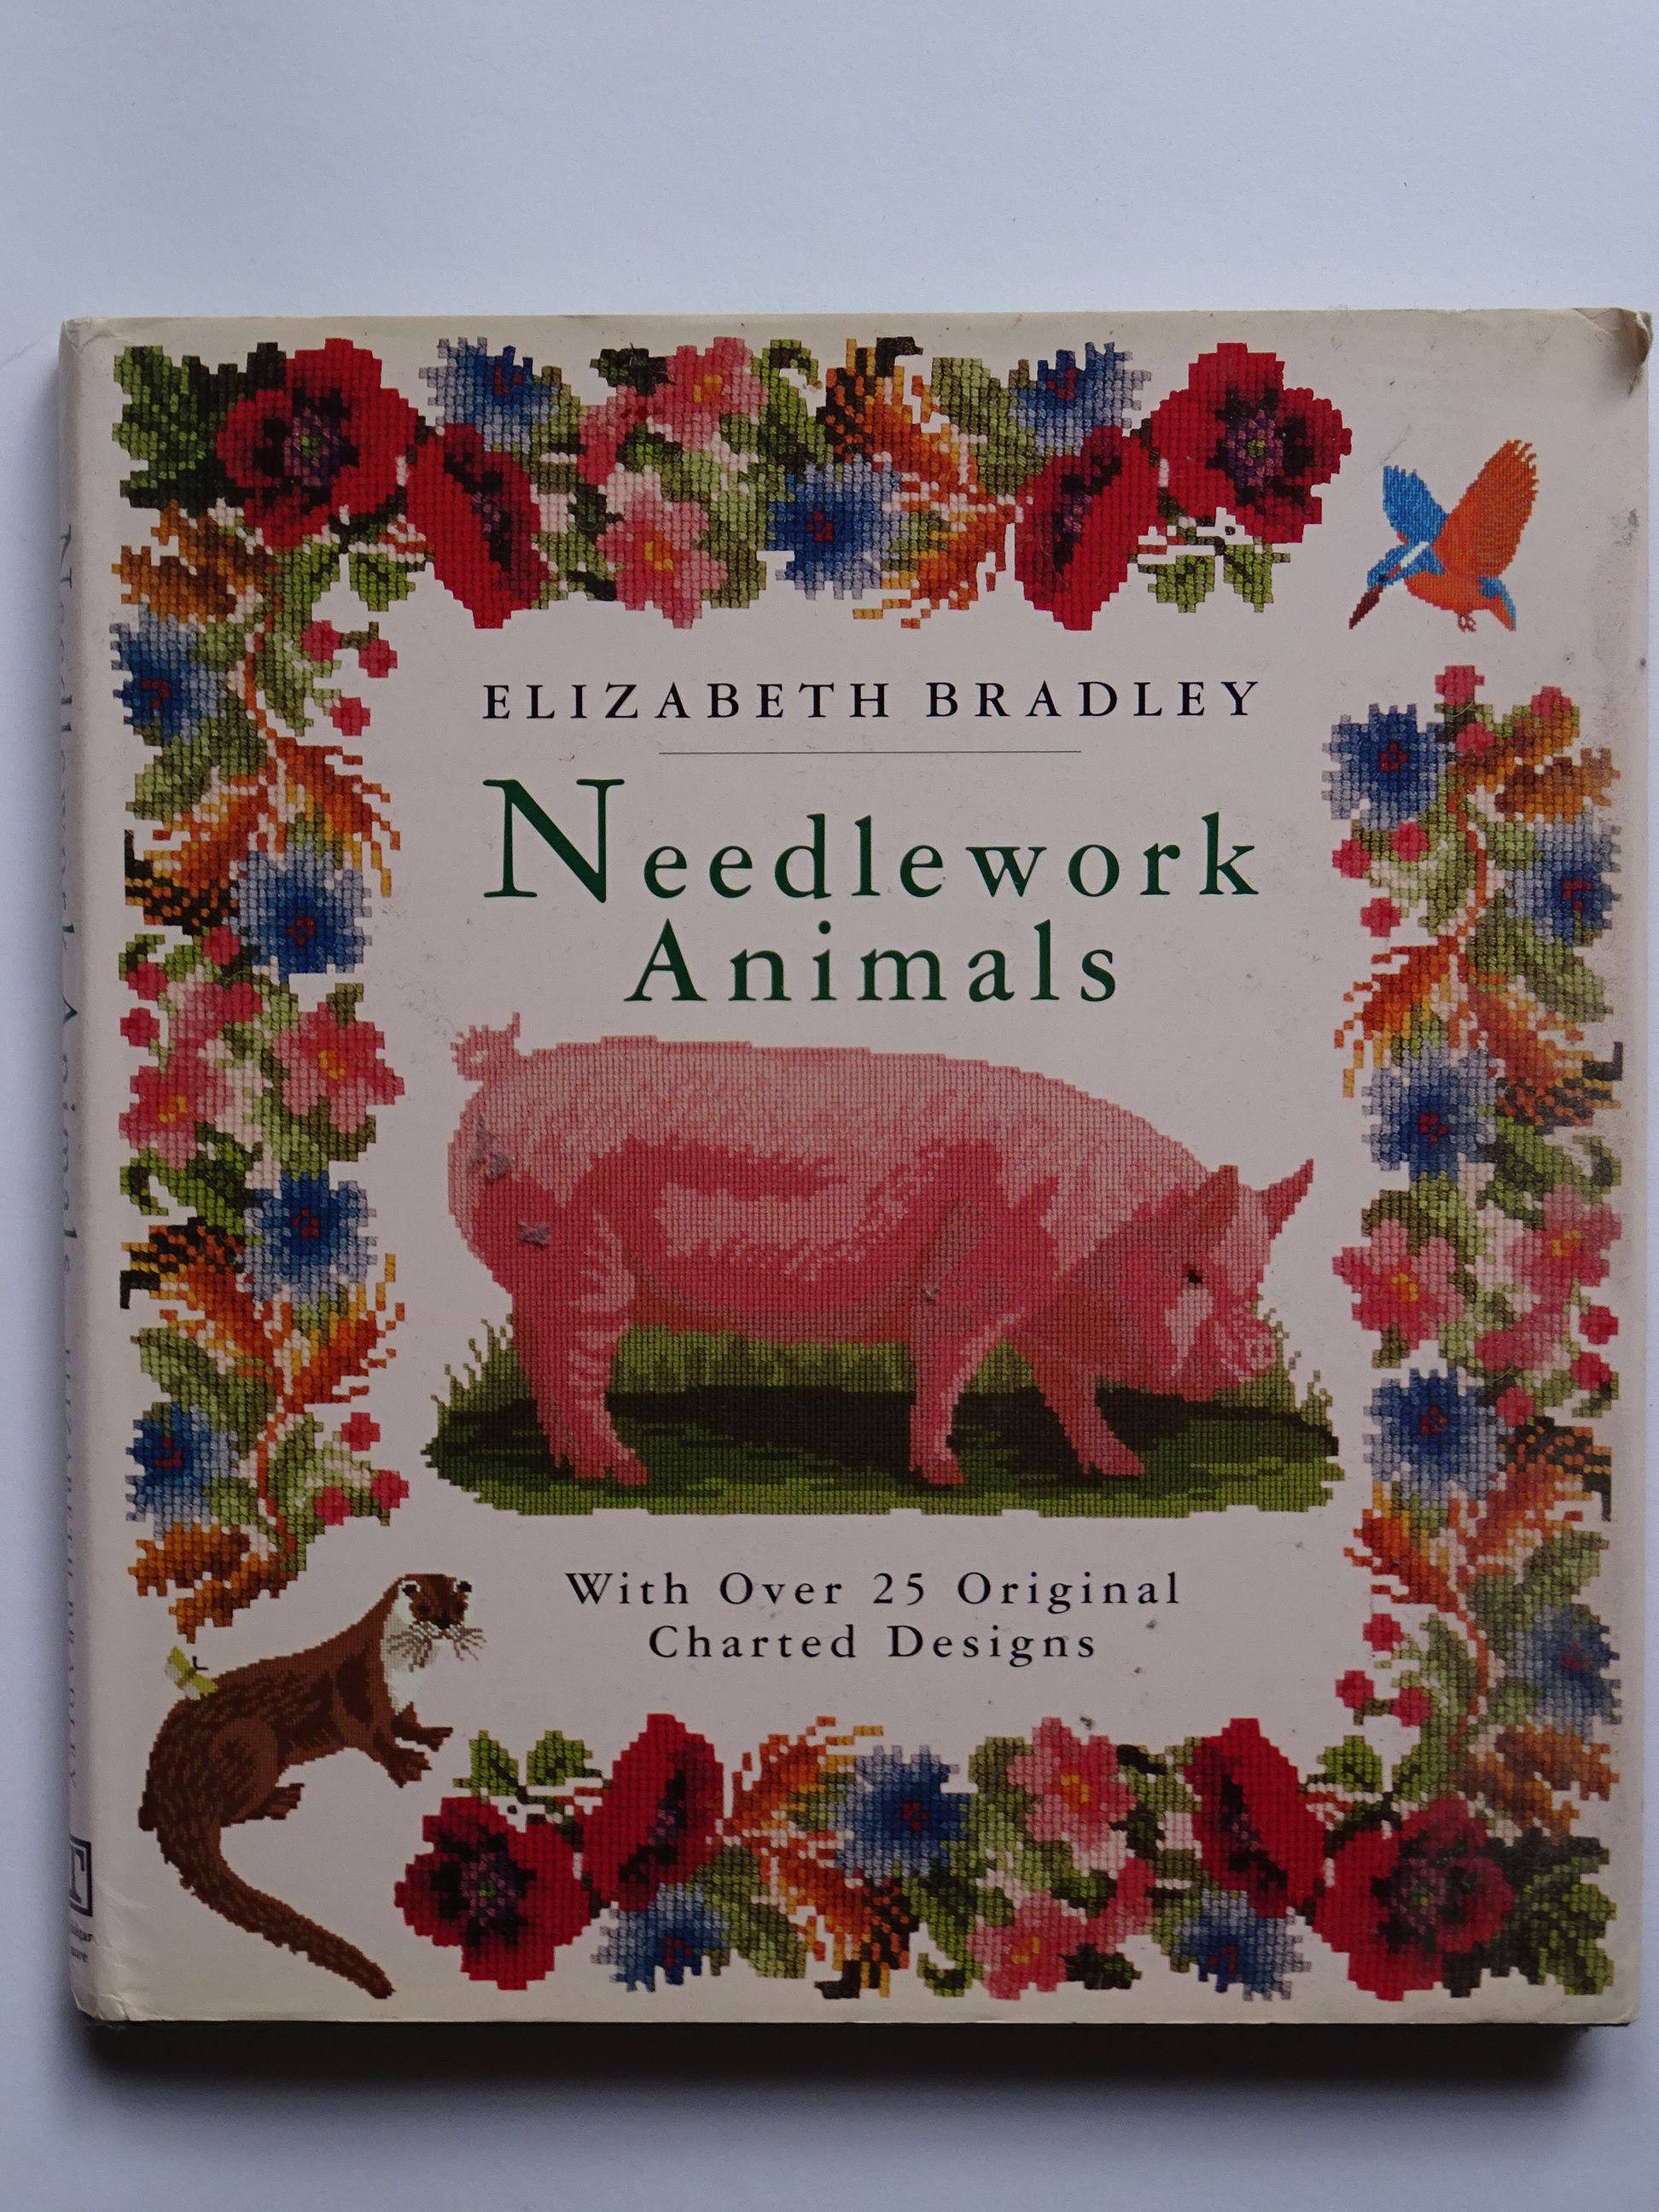 Bradley, Elizabeth - Needlework Animals